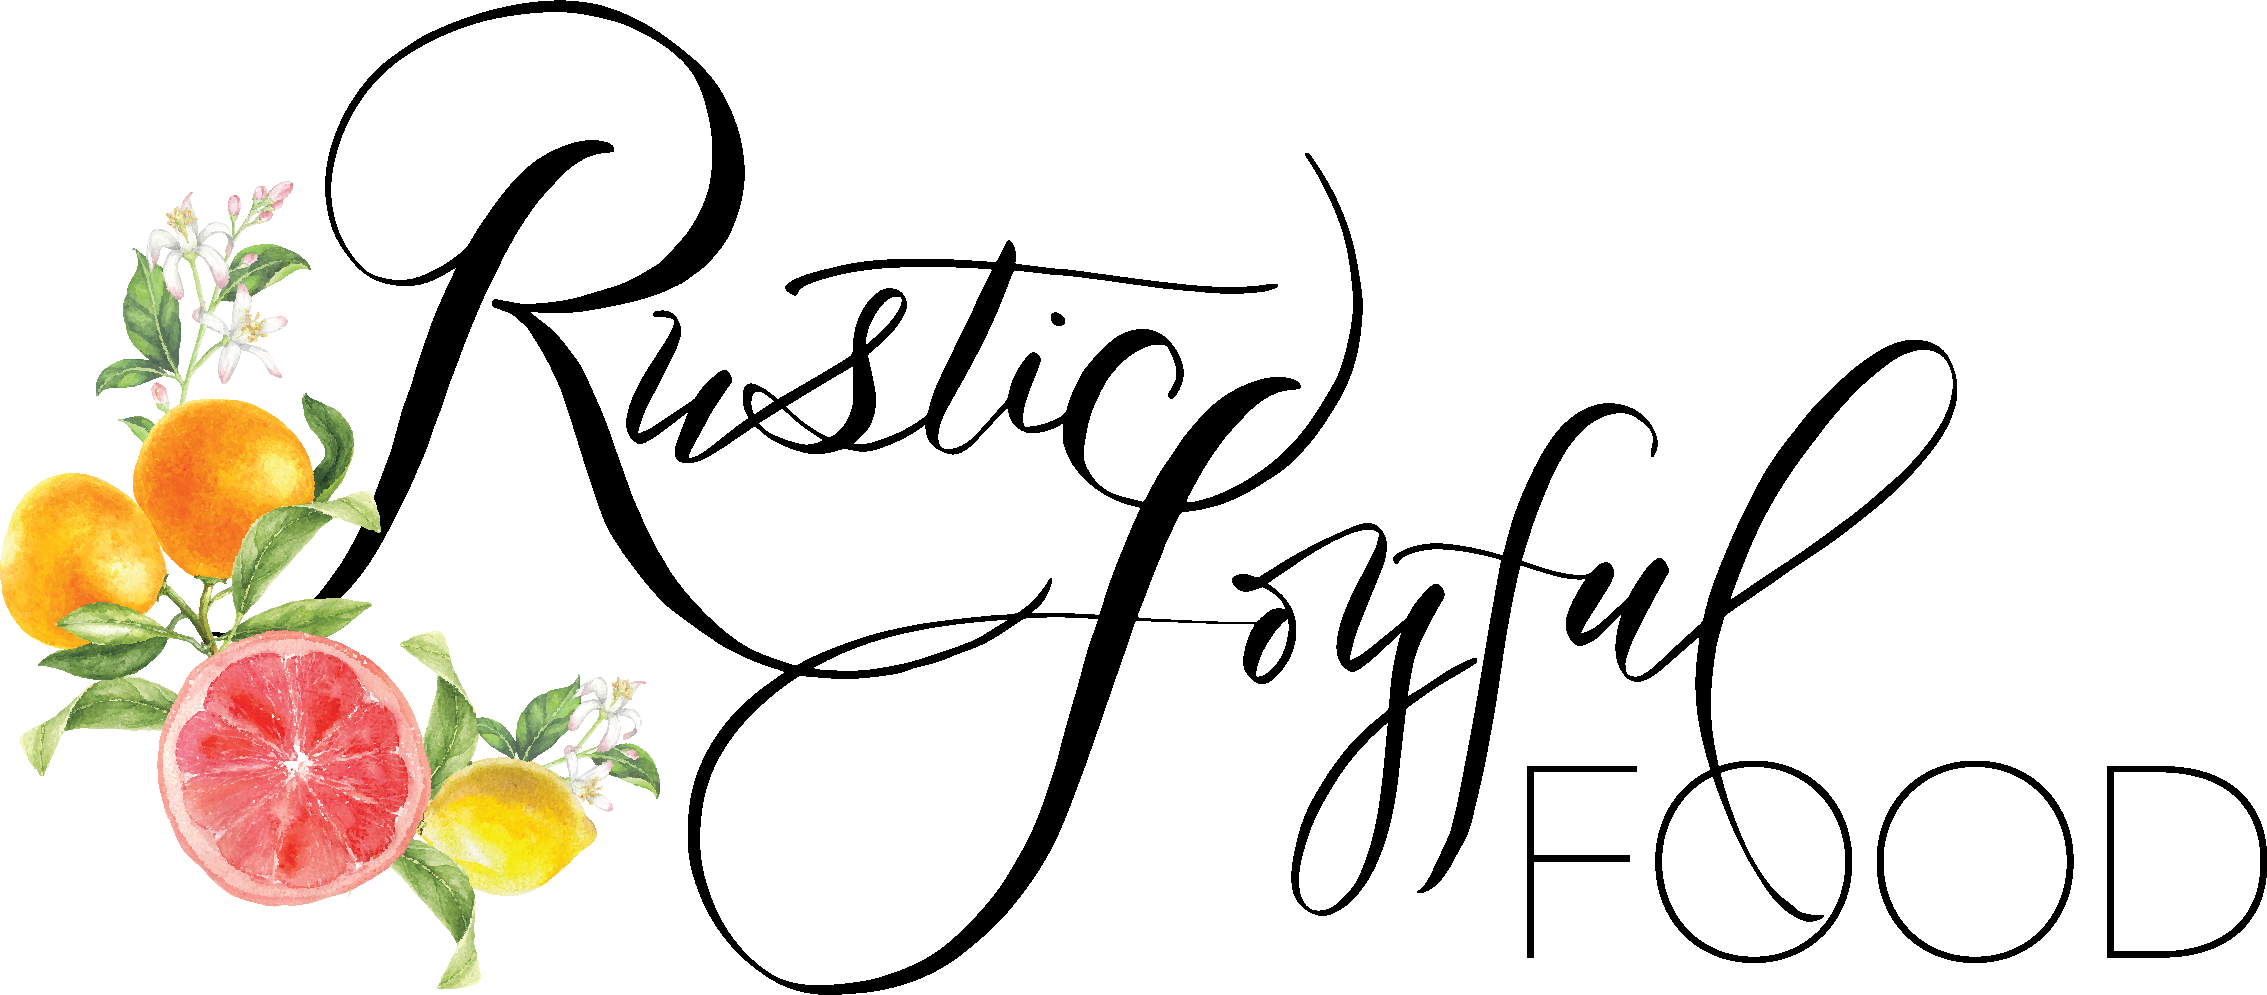 Rustic Joyful Food Logo New FINAL.png